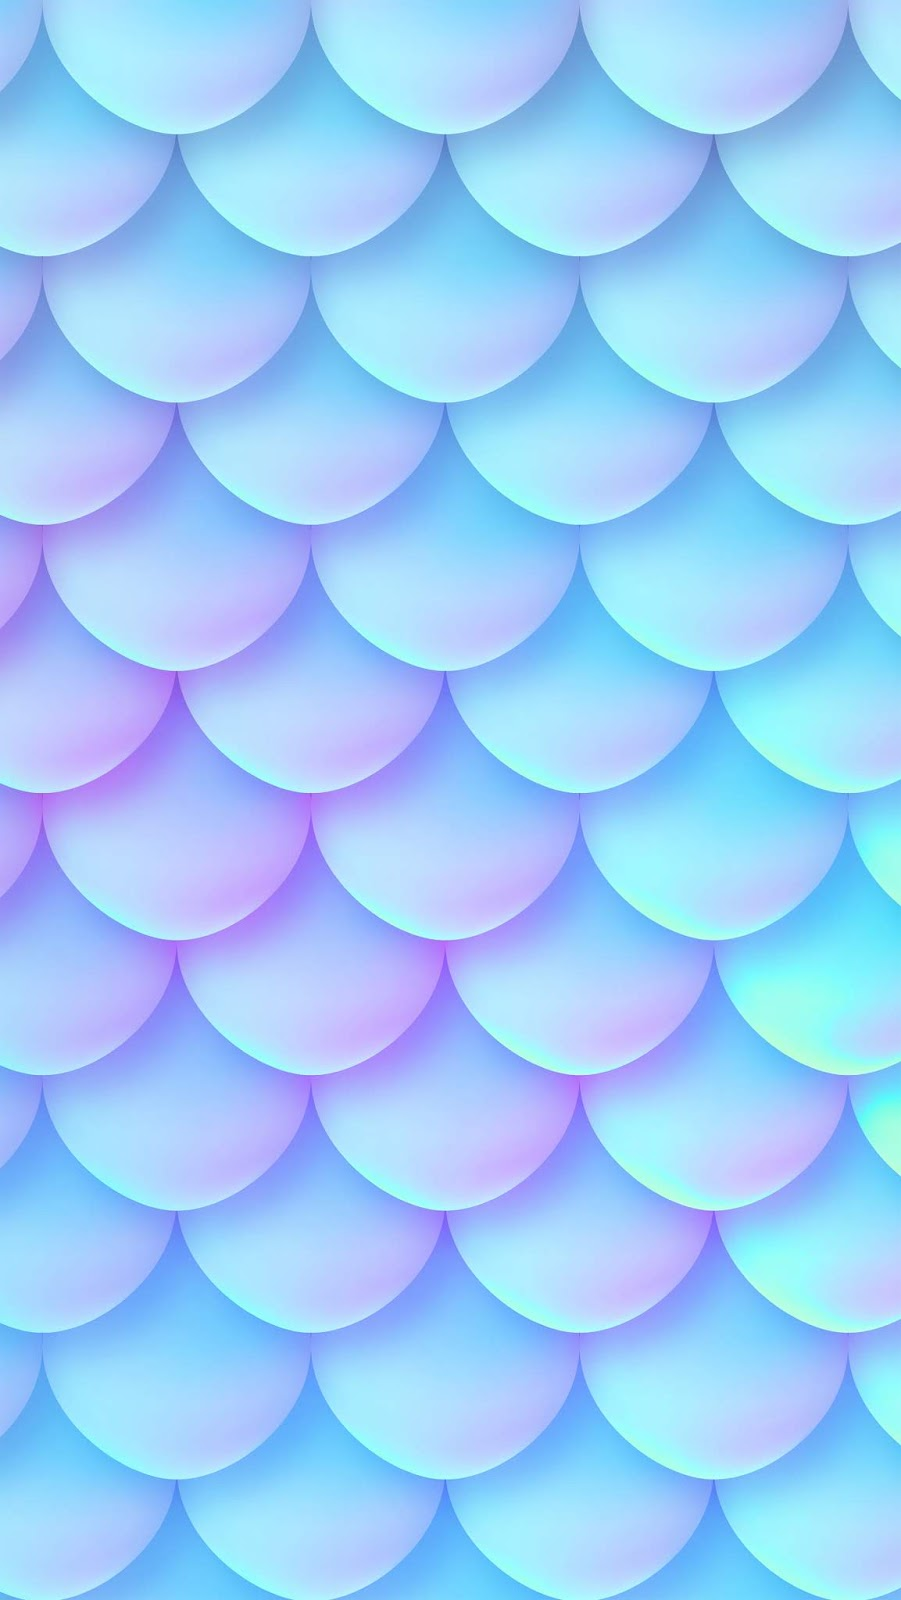 holographic pattern wallpaper vertical in 4K resolution